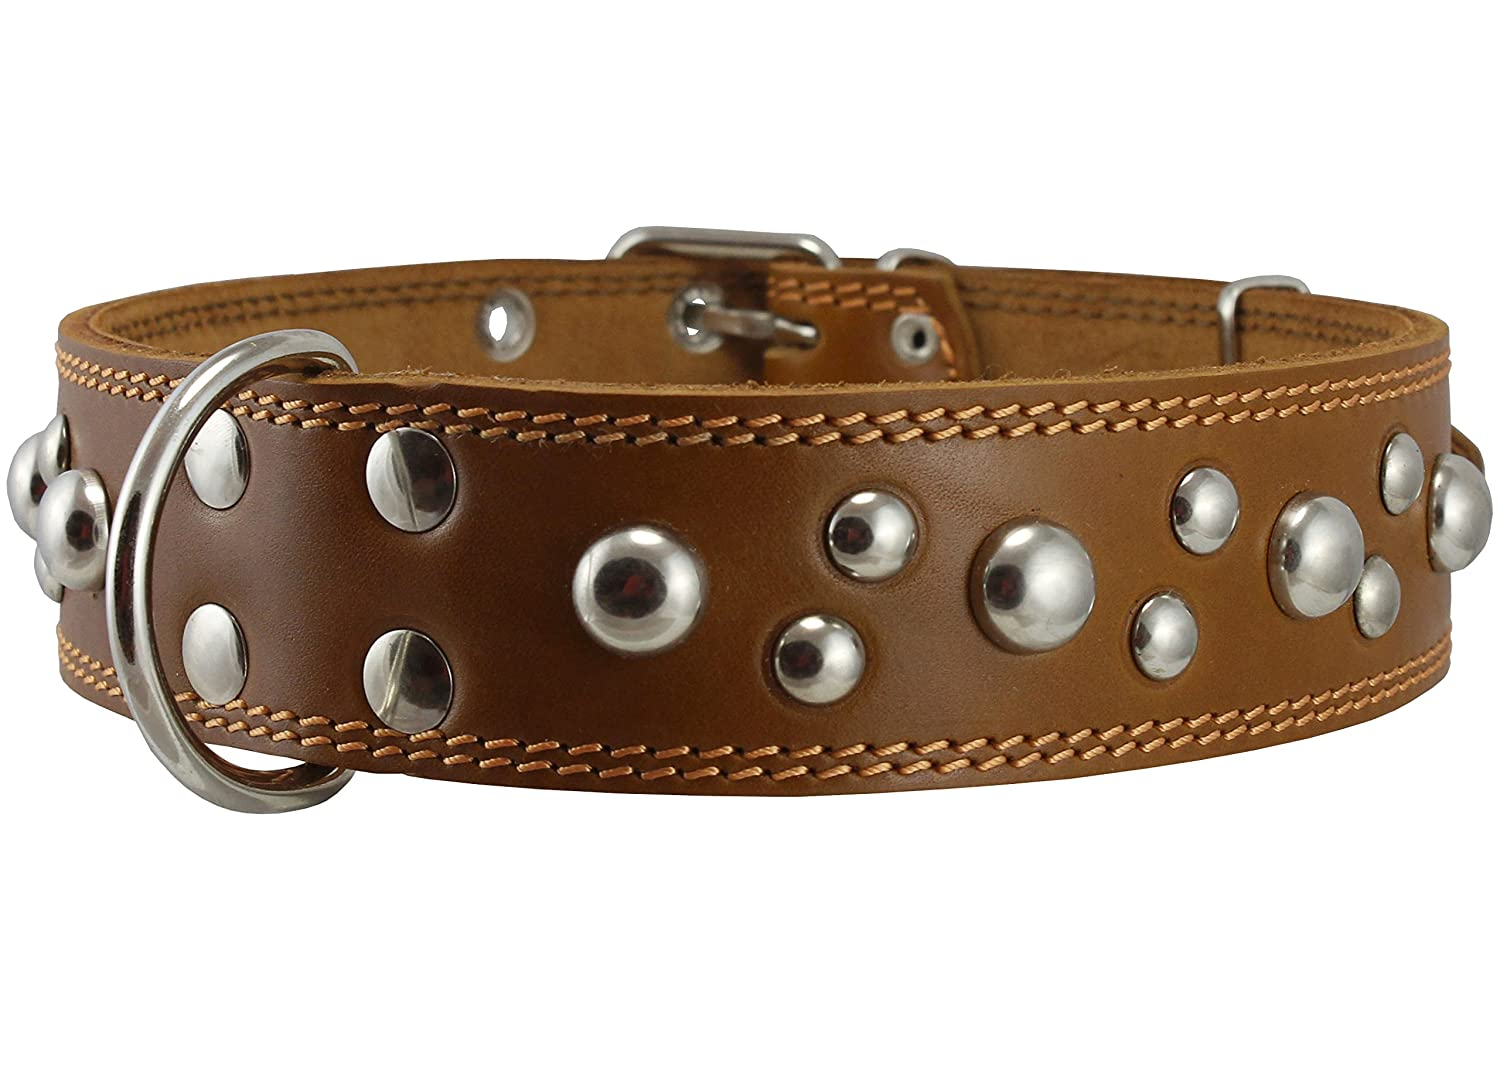 Genuine 1.75 Wide Thick Leather Studded Dog Collar Tan. Fits 21.5-26 Neck XLarge Breeds Newfoundland